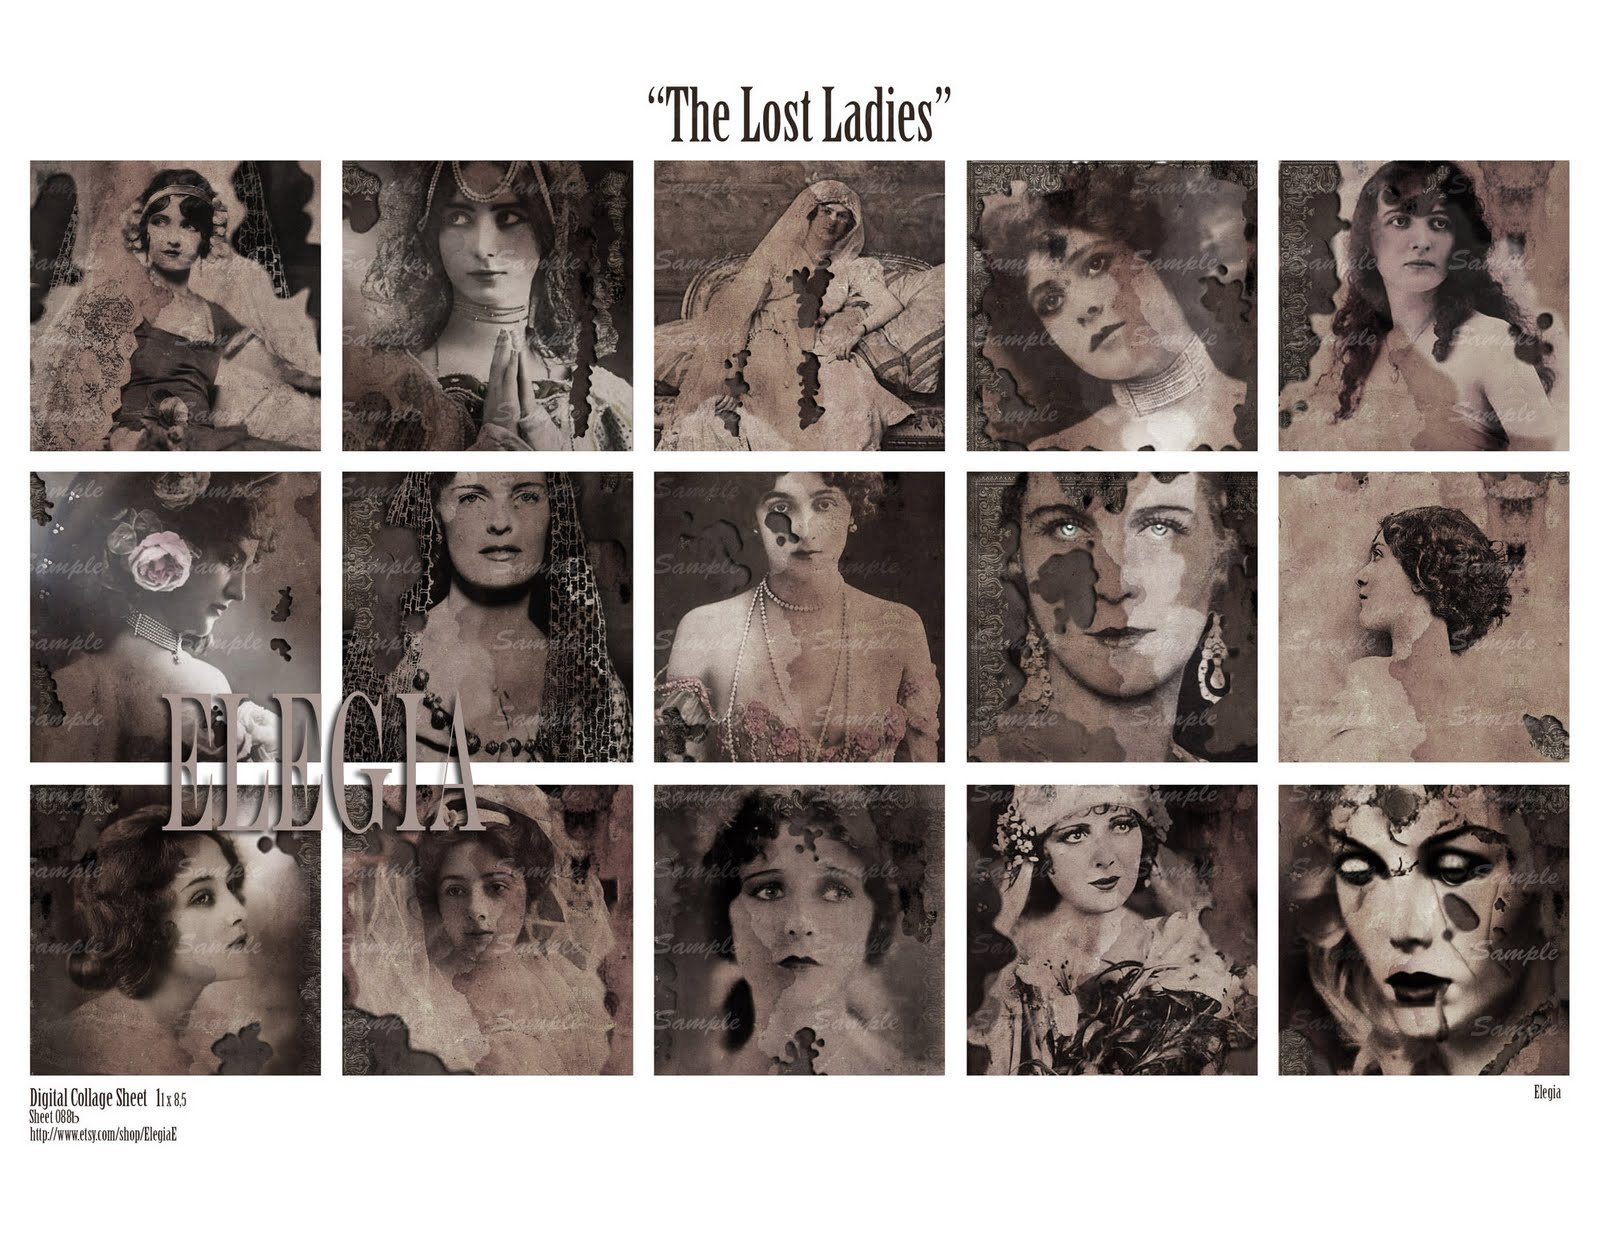 art fro the lost ladies